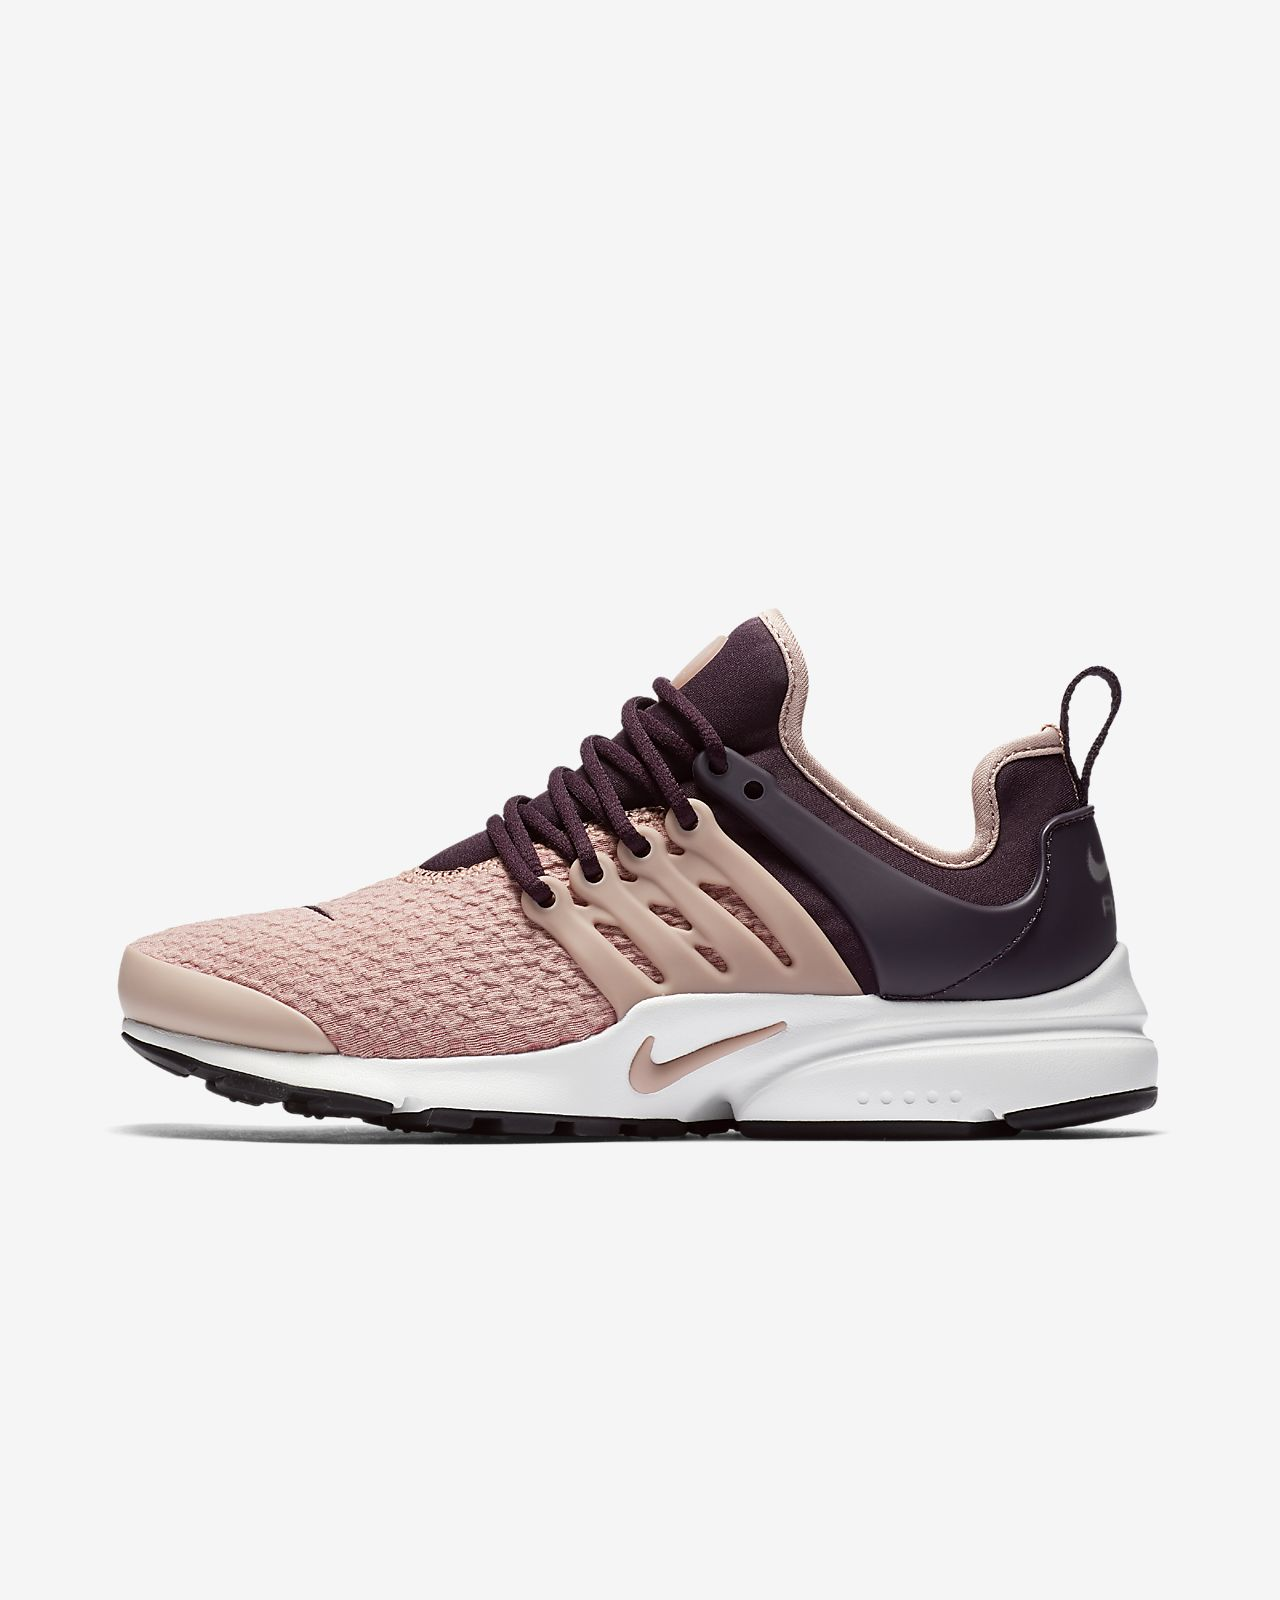 the latest 35e62 7f220 ... Nike Air Presto Womens Shoe